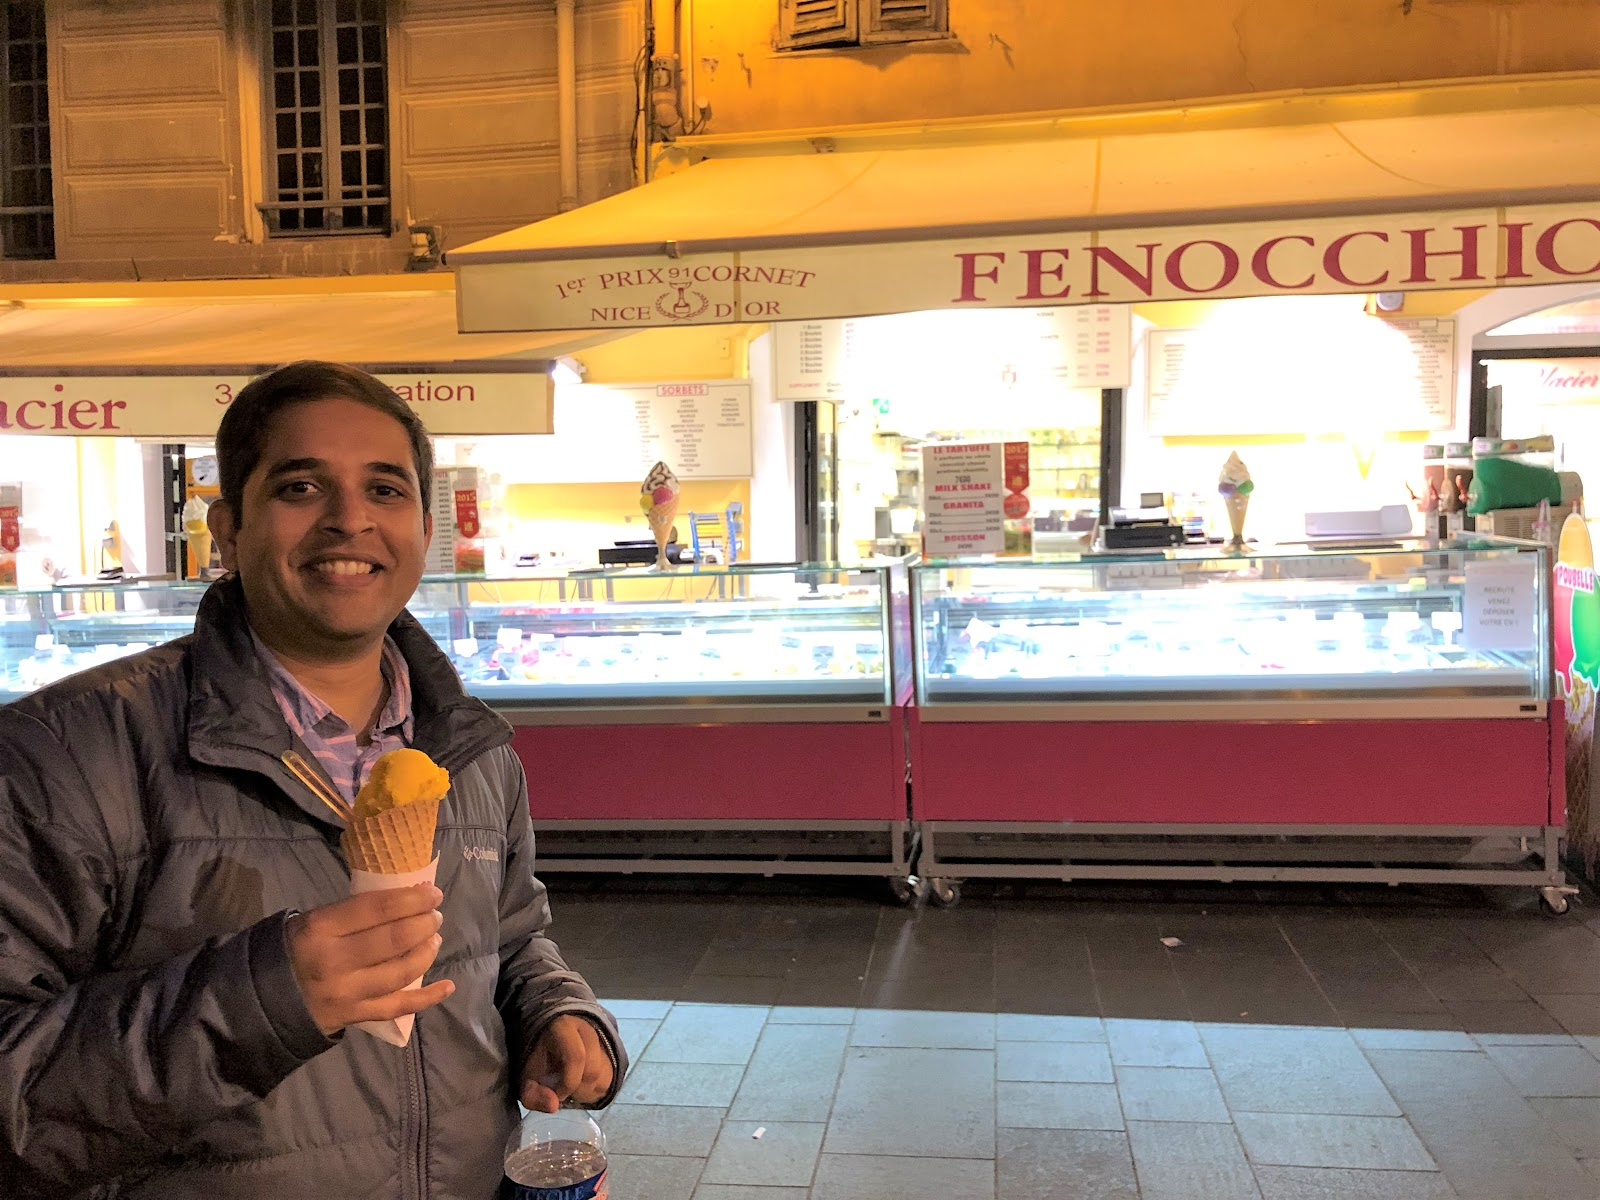 Fenocchio ice cream in Nice